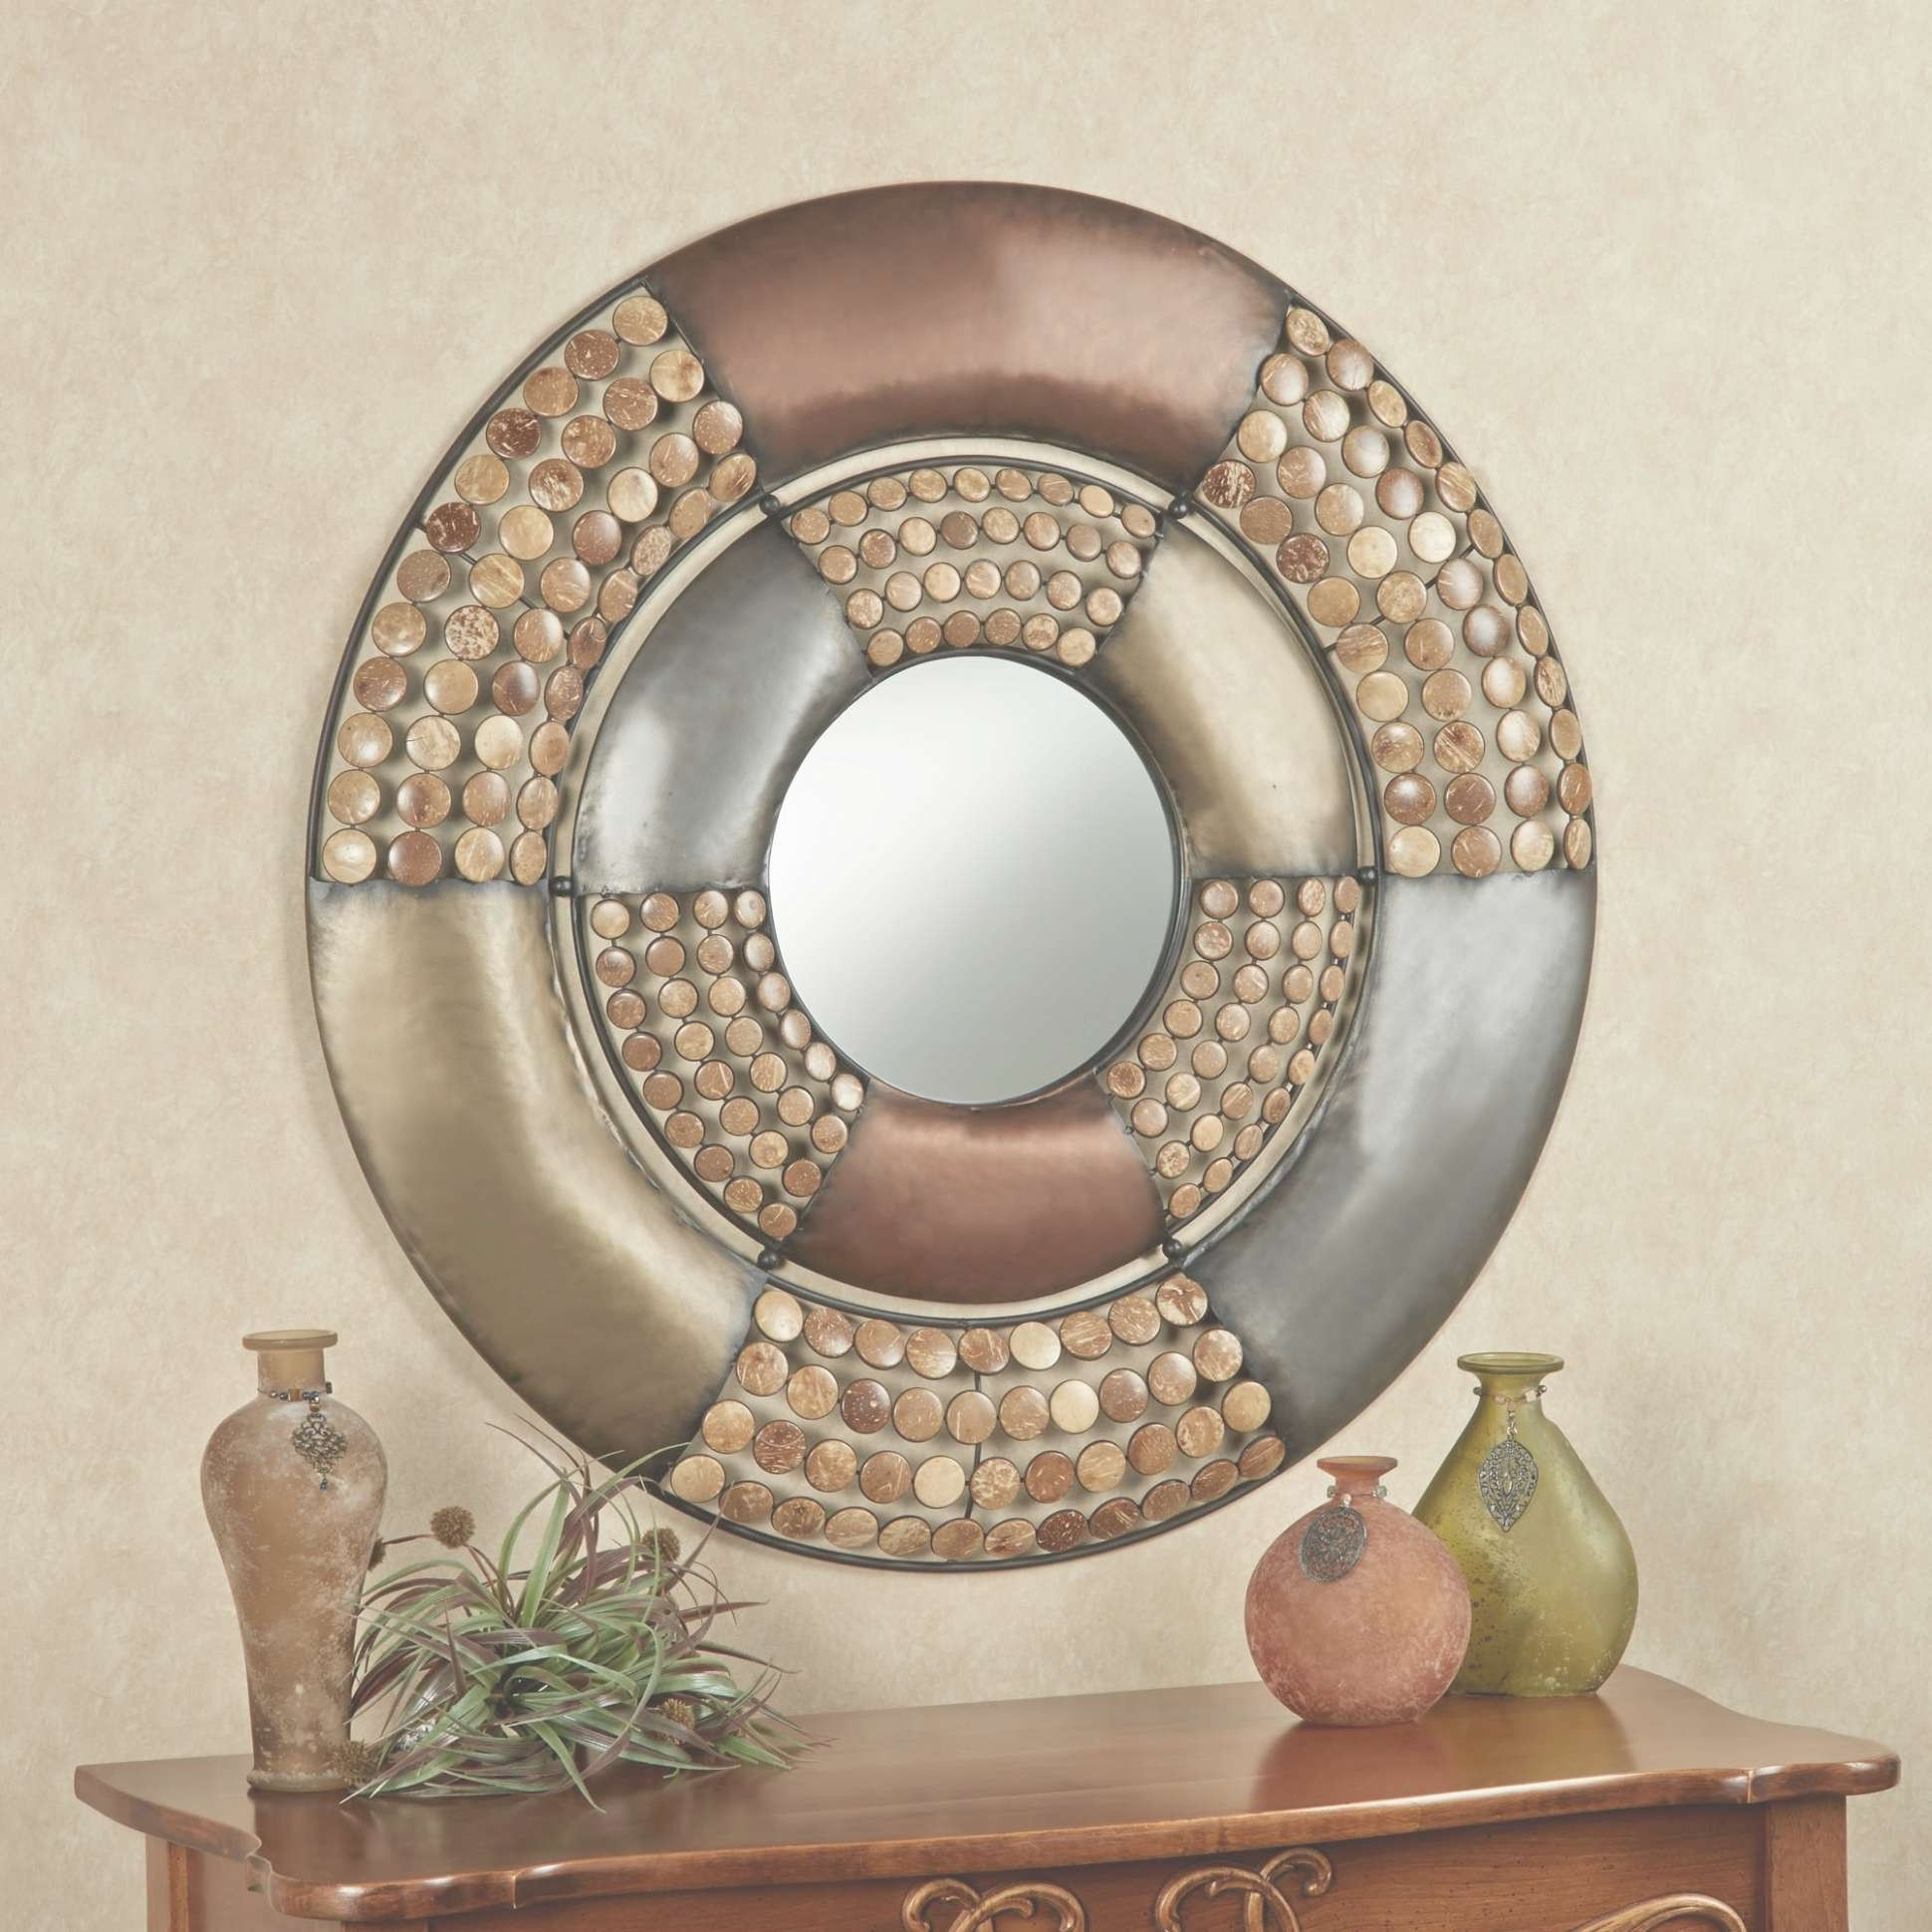 Stunning Large Round Wall Decor Inspiration | Home Design Decor Within Current Round Wall Art (View 13 of 20)